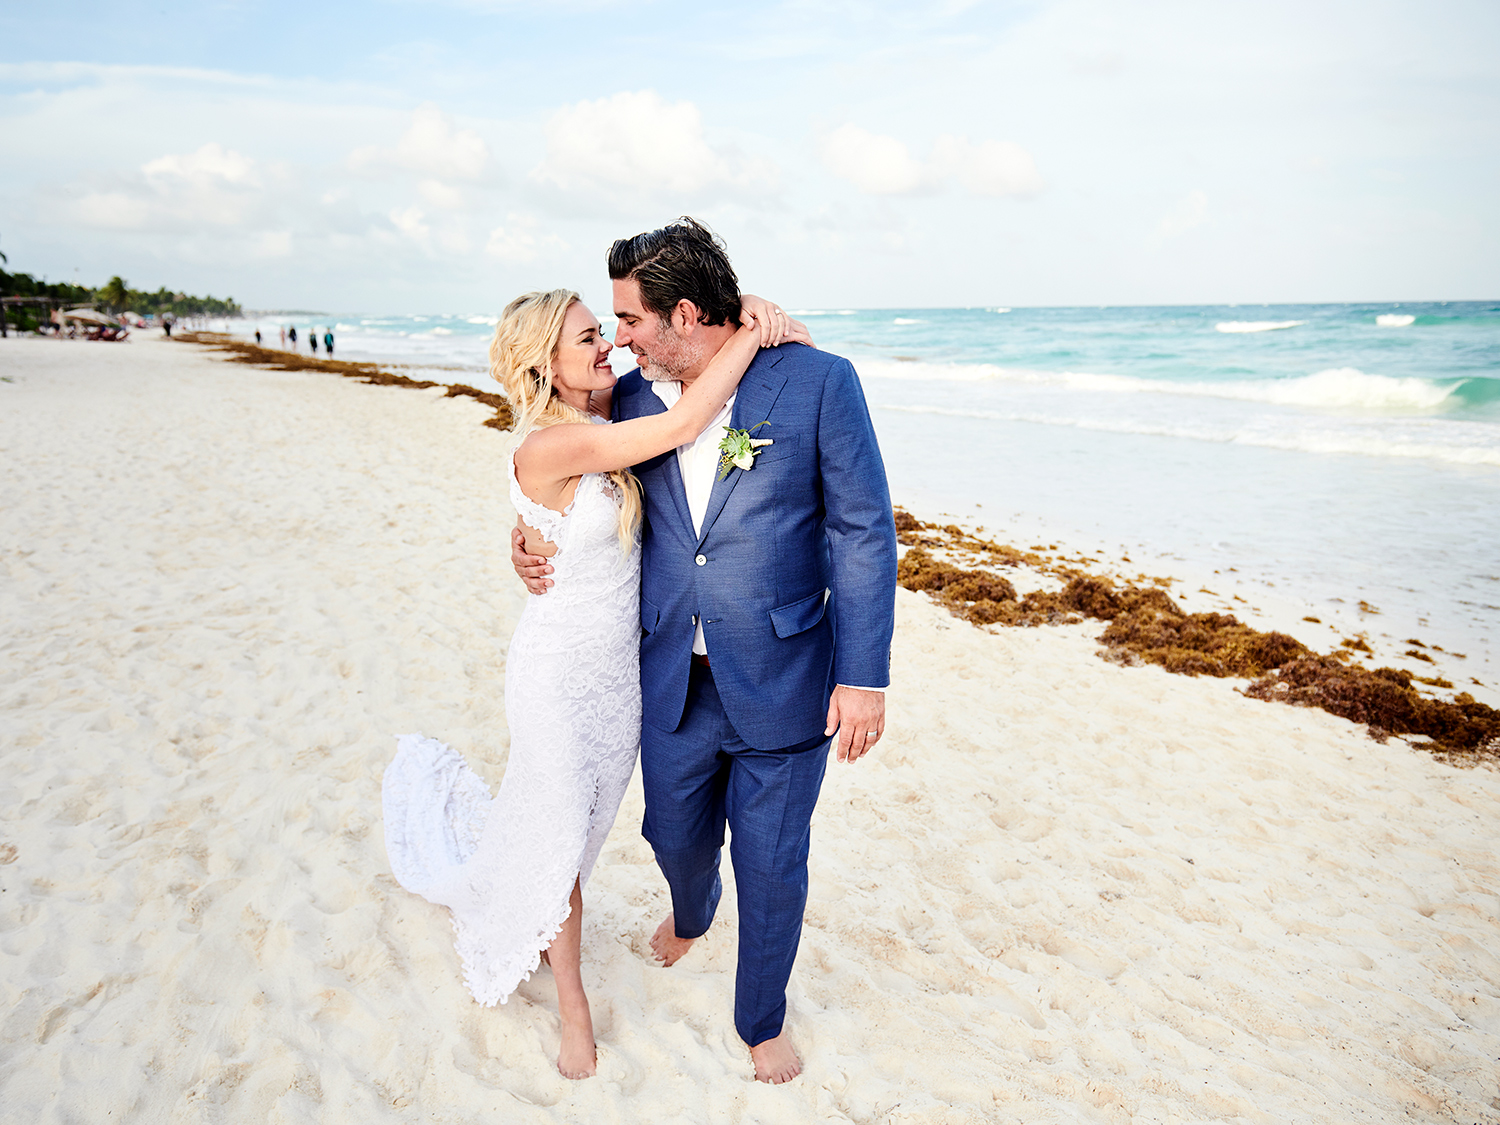 Bride and Groom beach wedding in Tulum, Mexico